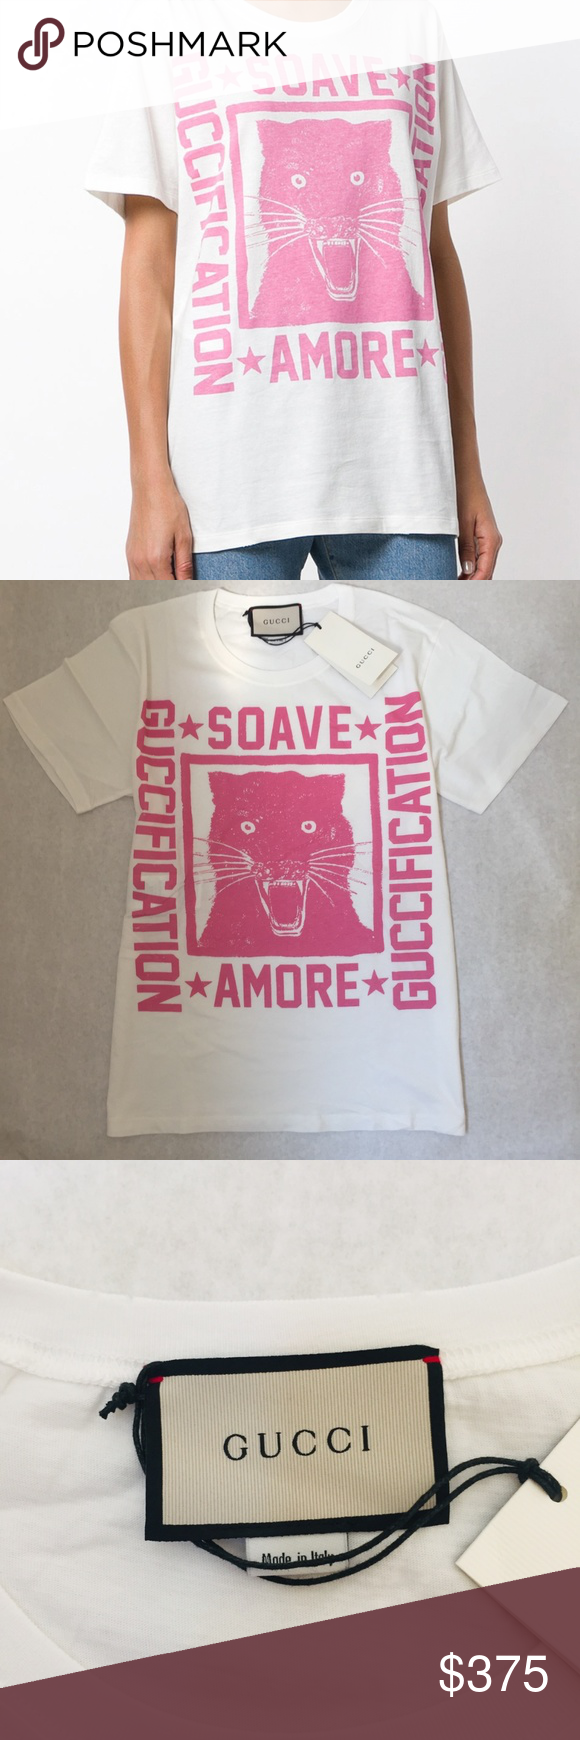 """GUCCI """"Soave Amore Guccification"""" print T-shirt XS This white oversized crew neck cotton tee from Gucci sports a contrast pink print. The print says """"Soave Amore,"""" which translates to """"a delicate love,"""" words from the first-century BC Latin poem """"De Rerum Natura"""" or """"On the Nature of Things"""" - by Roman poet and philosopher Lucretius, which explains Epicurean philosophy.  Designer Style ID: 492347X3L32 Colour: 9208 IVORY/PRINCESS ROSE  There is a little mark on the wash tag that was made to preve"""